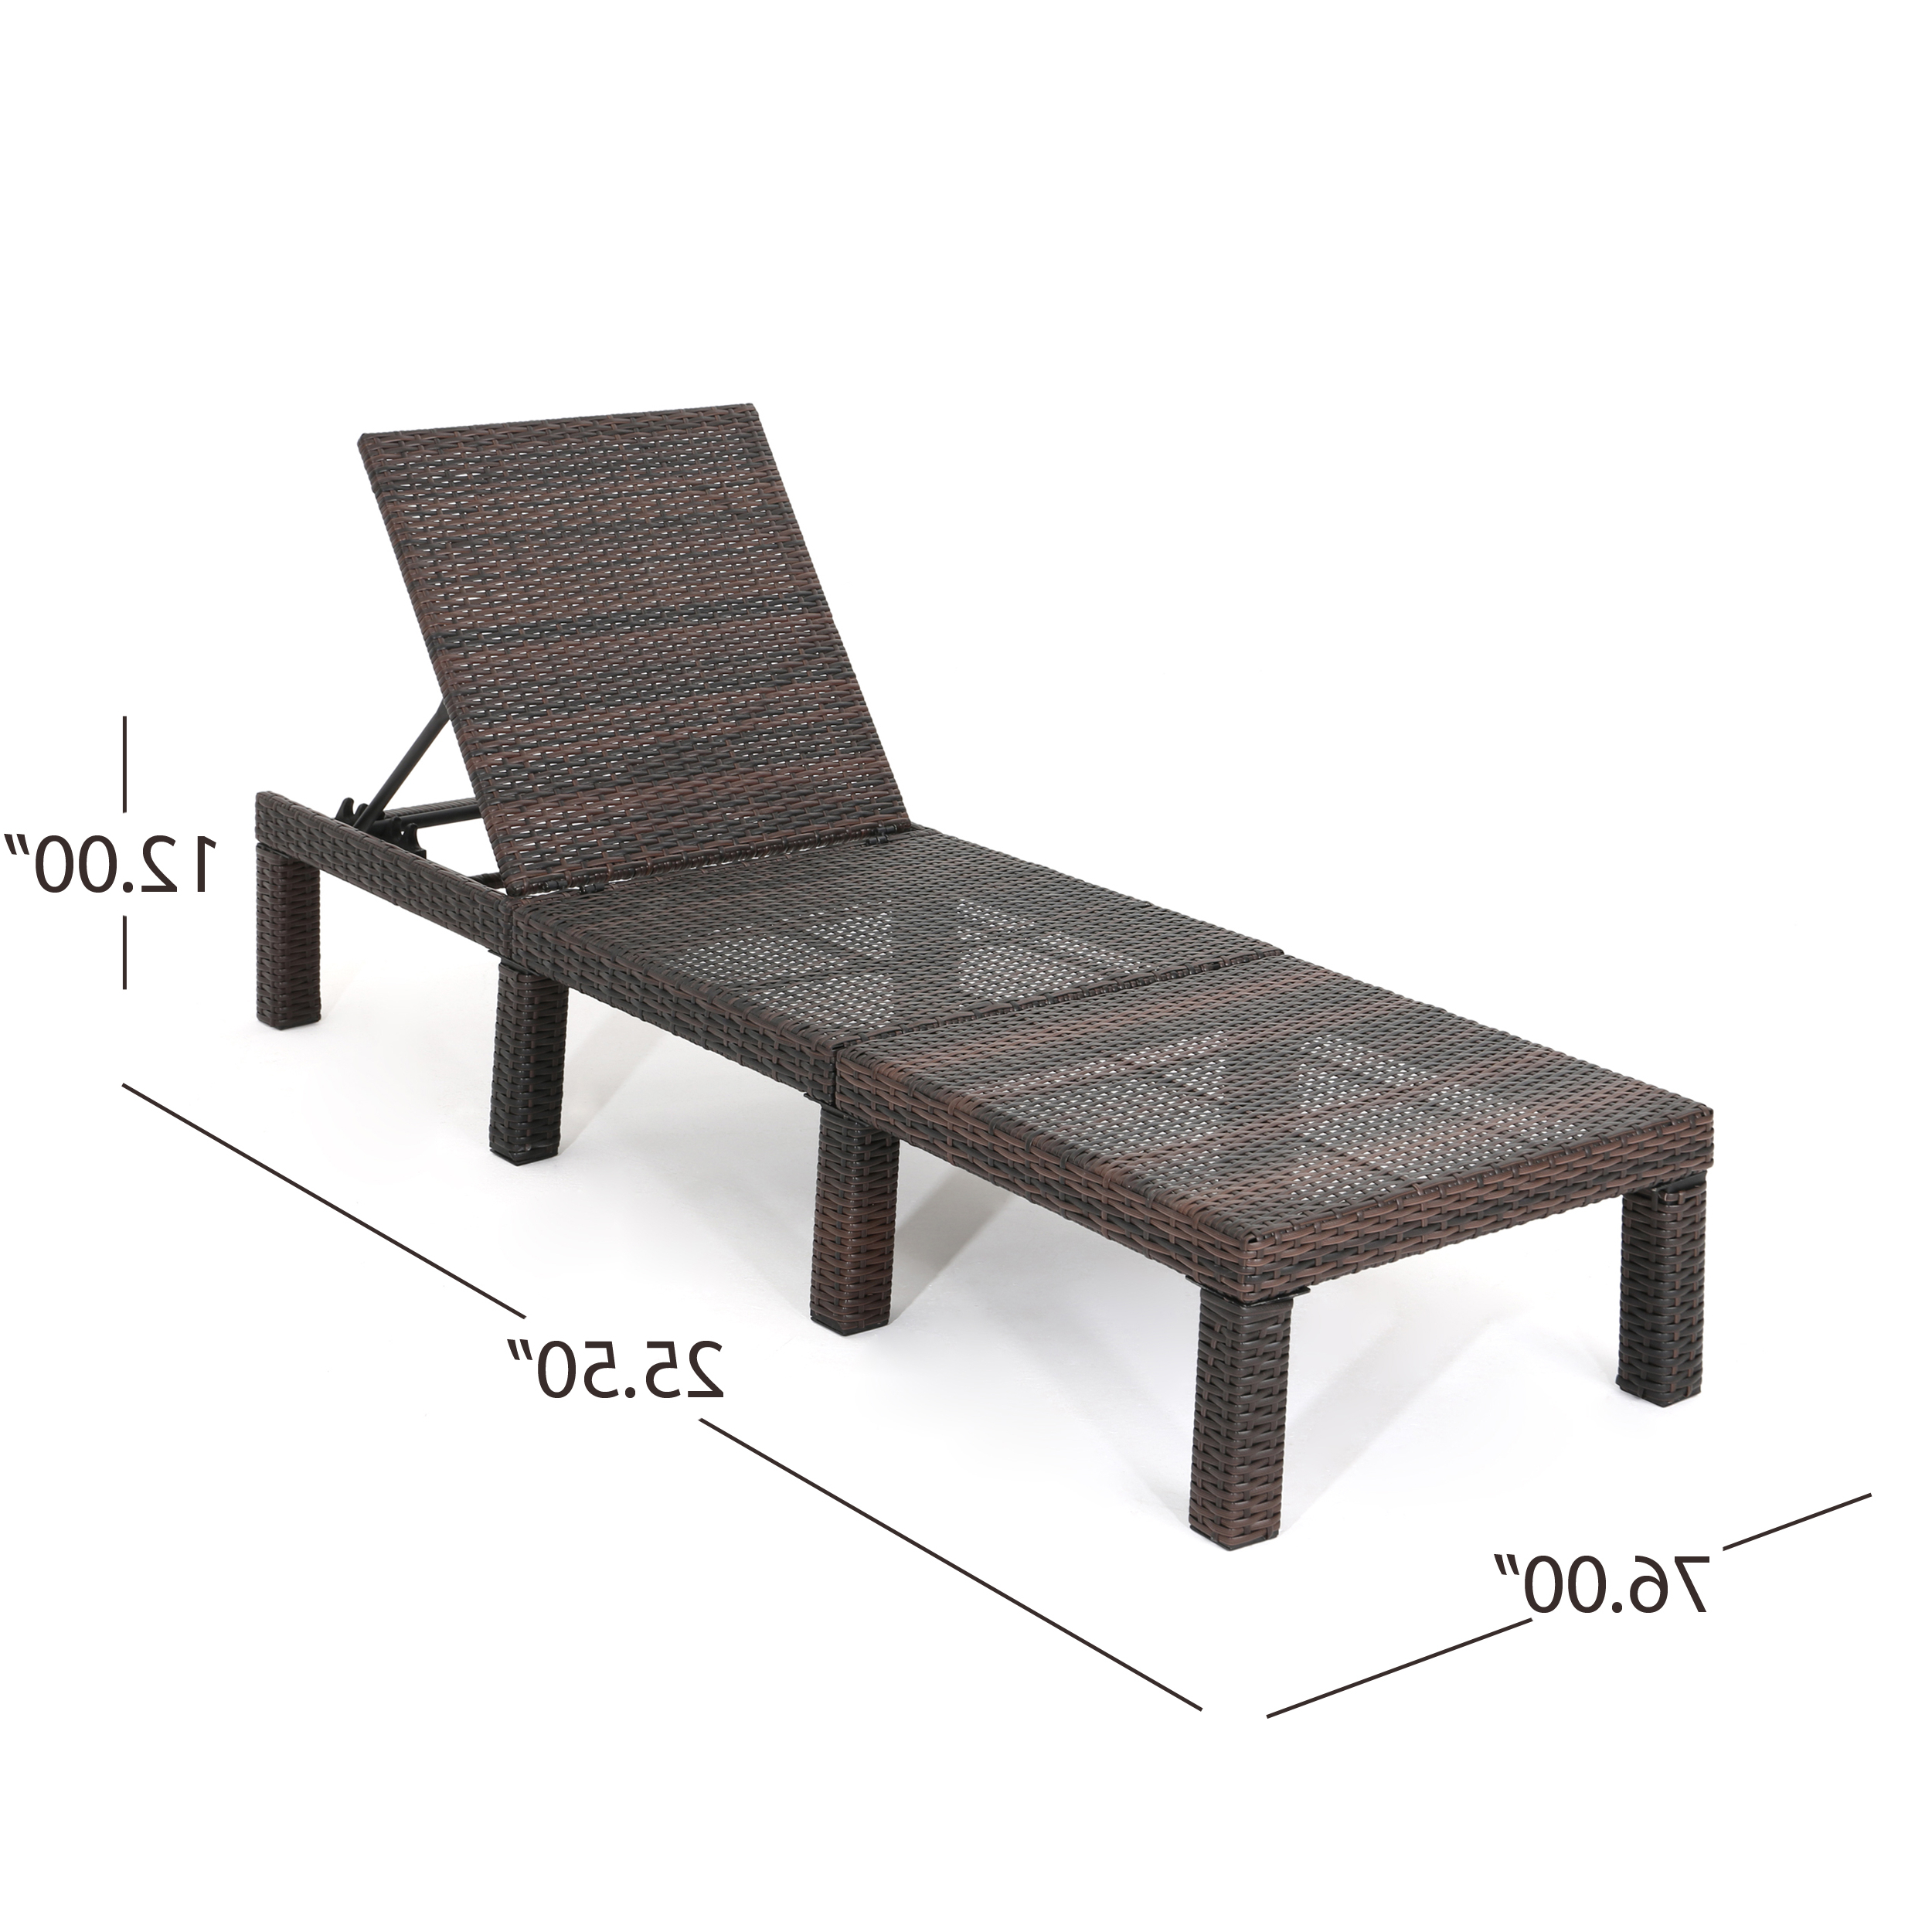 Widely Used Details About Joyce Outdoor Wicker Chaise Lounge With Water Resistant Cushion In White Wicker Adjustable Chaise Loungers With Cushions (View 12 of 25)